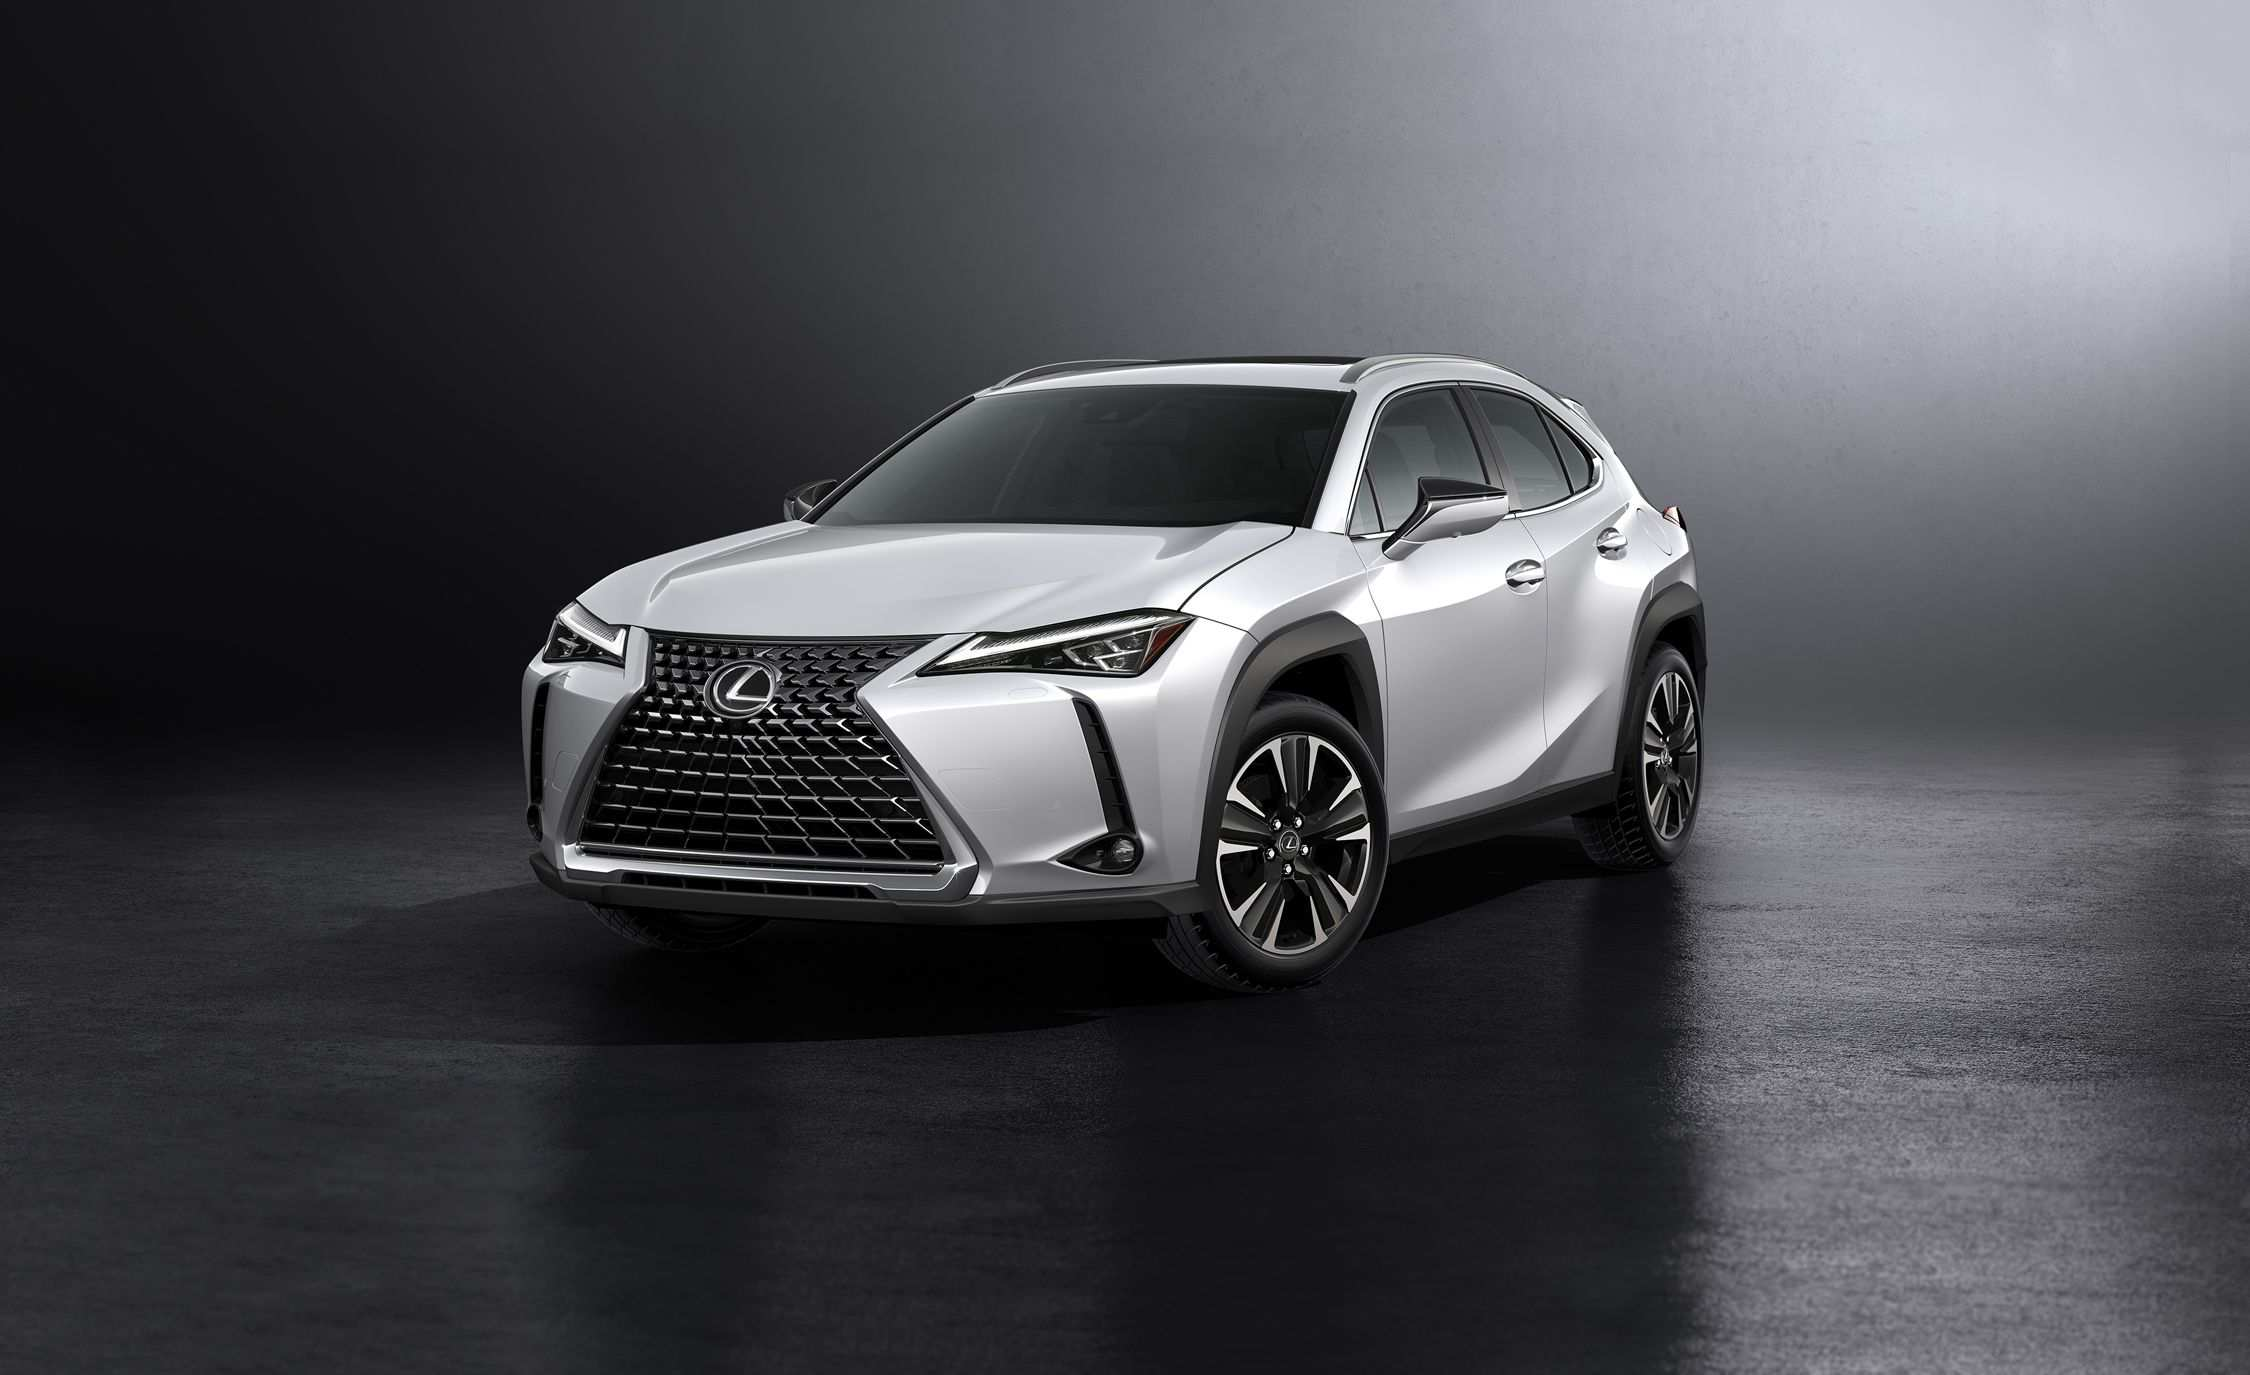 61 All New Lexus 2019 Ux Review And Release Date